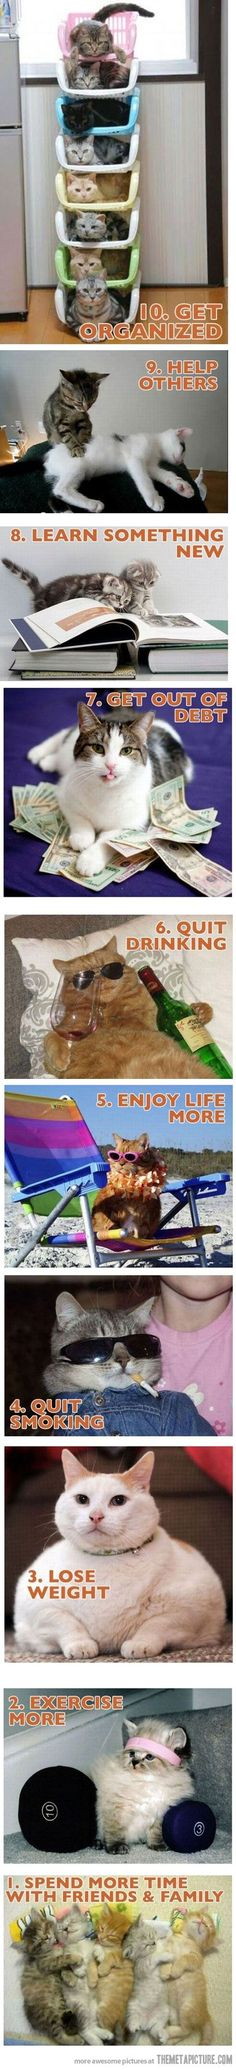 New year resolutions with cats For more New Years cats, visit https://www.facebook.com/funholidaycats